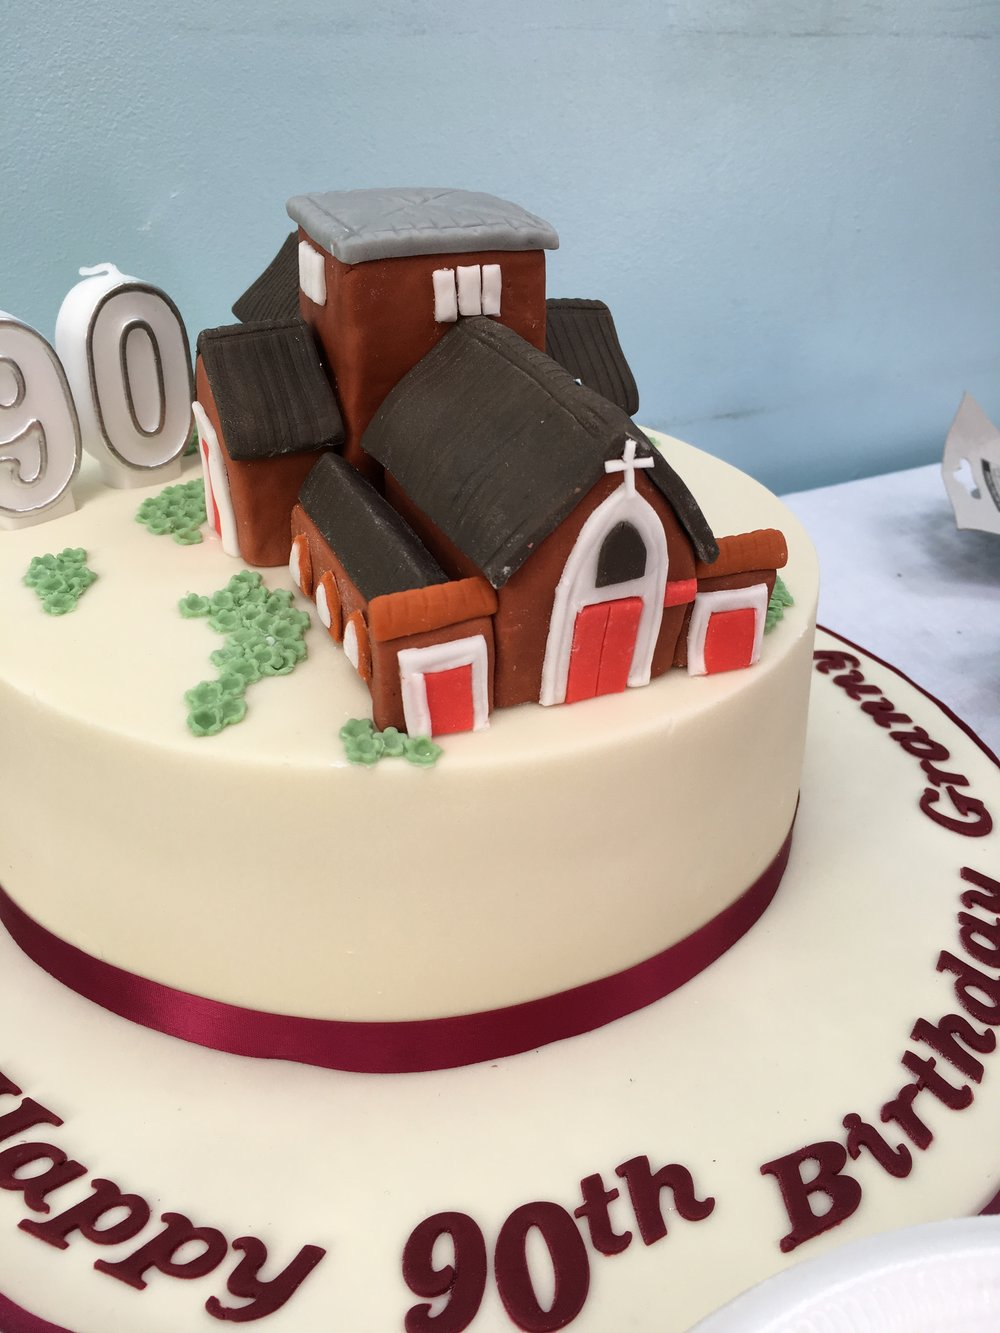 St Christophers In Cake Form For Margaret Allen 90th Birthday And Celebrating Her 86 Years As Part Of Our Church Happy From Everyone At